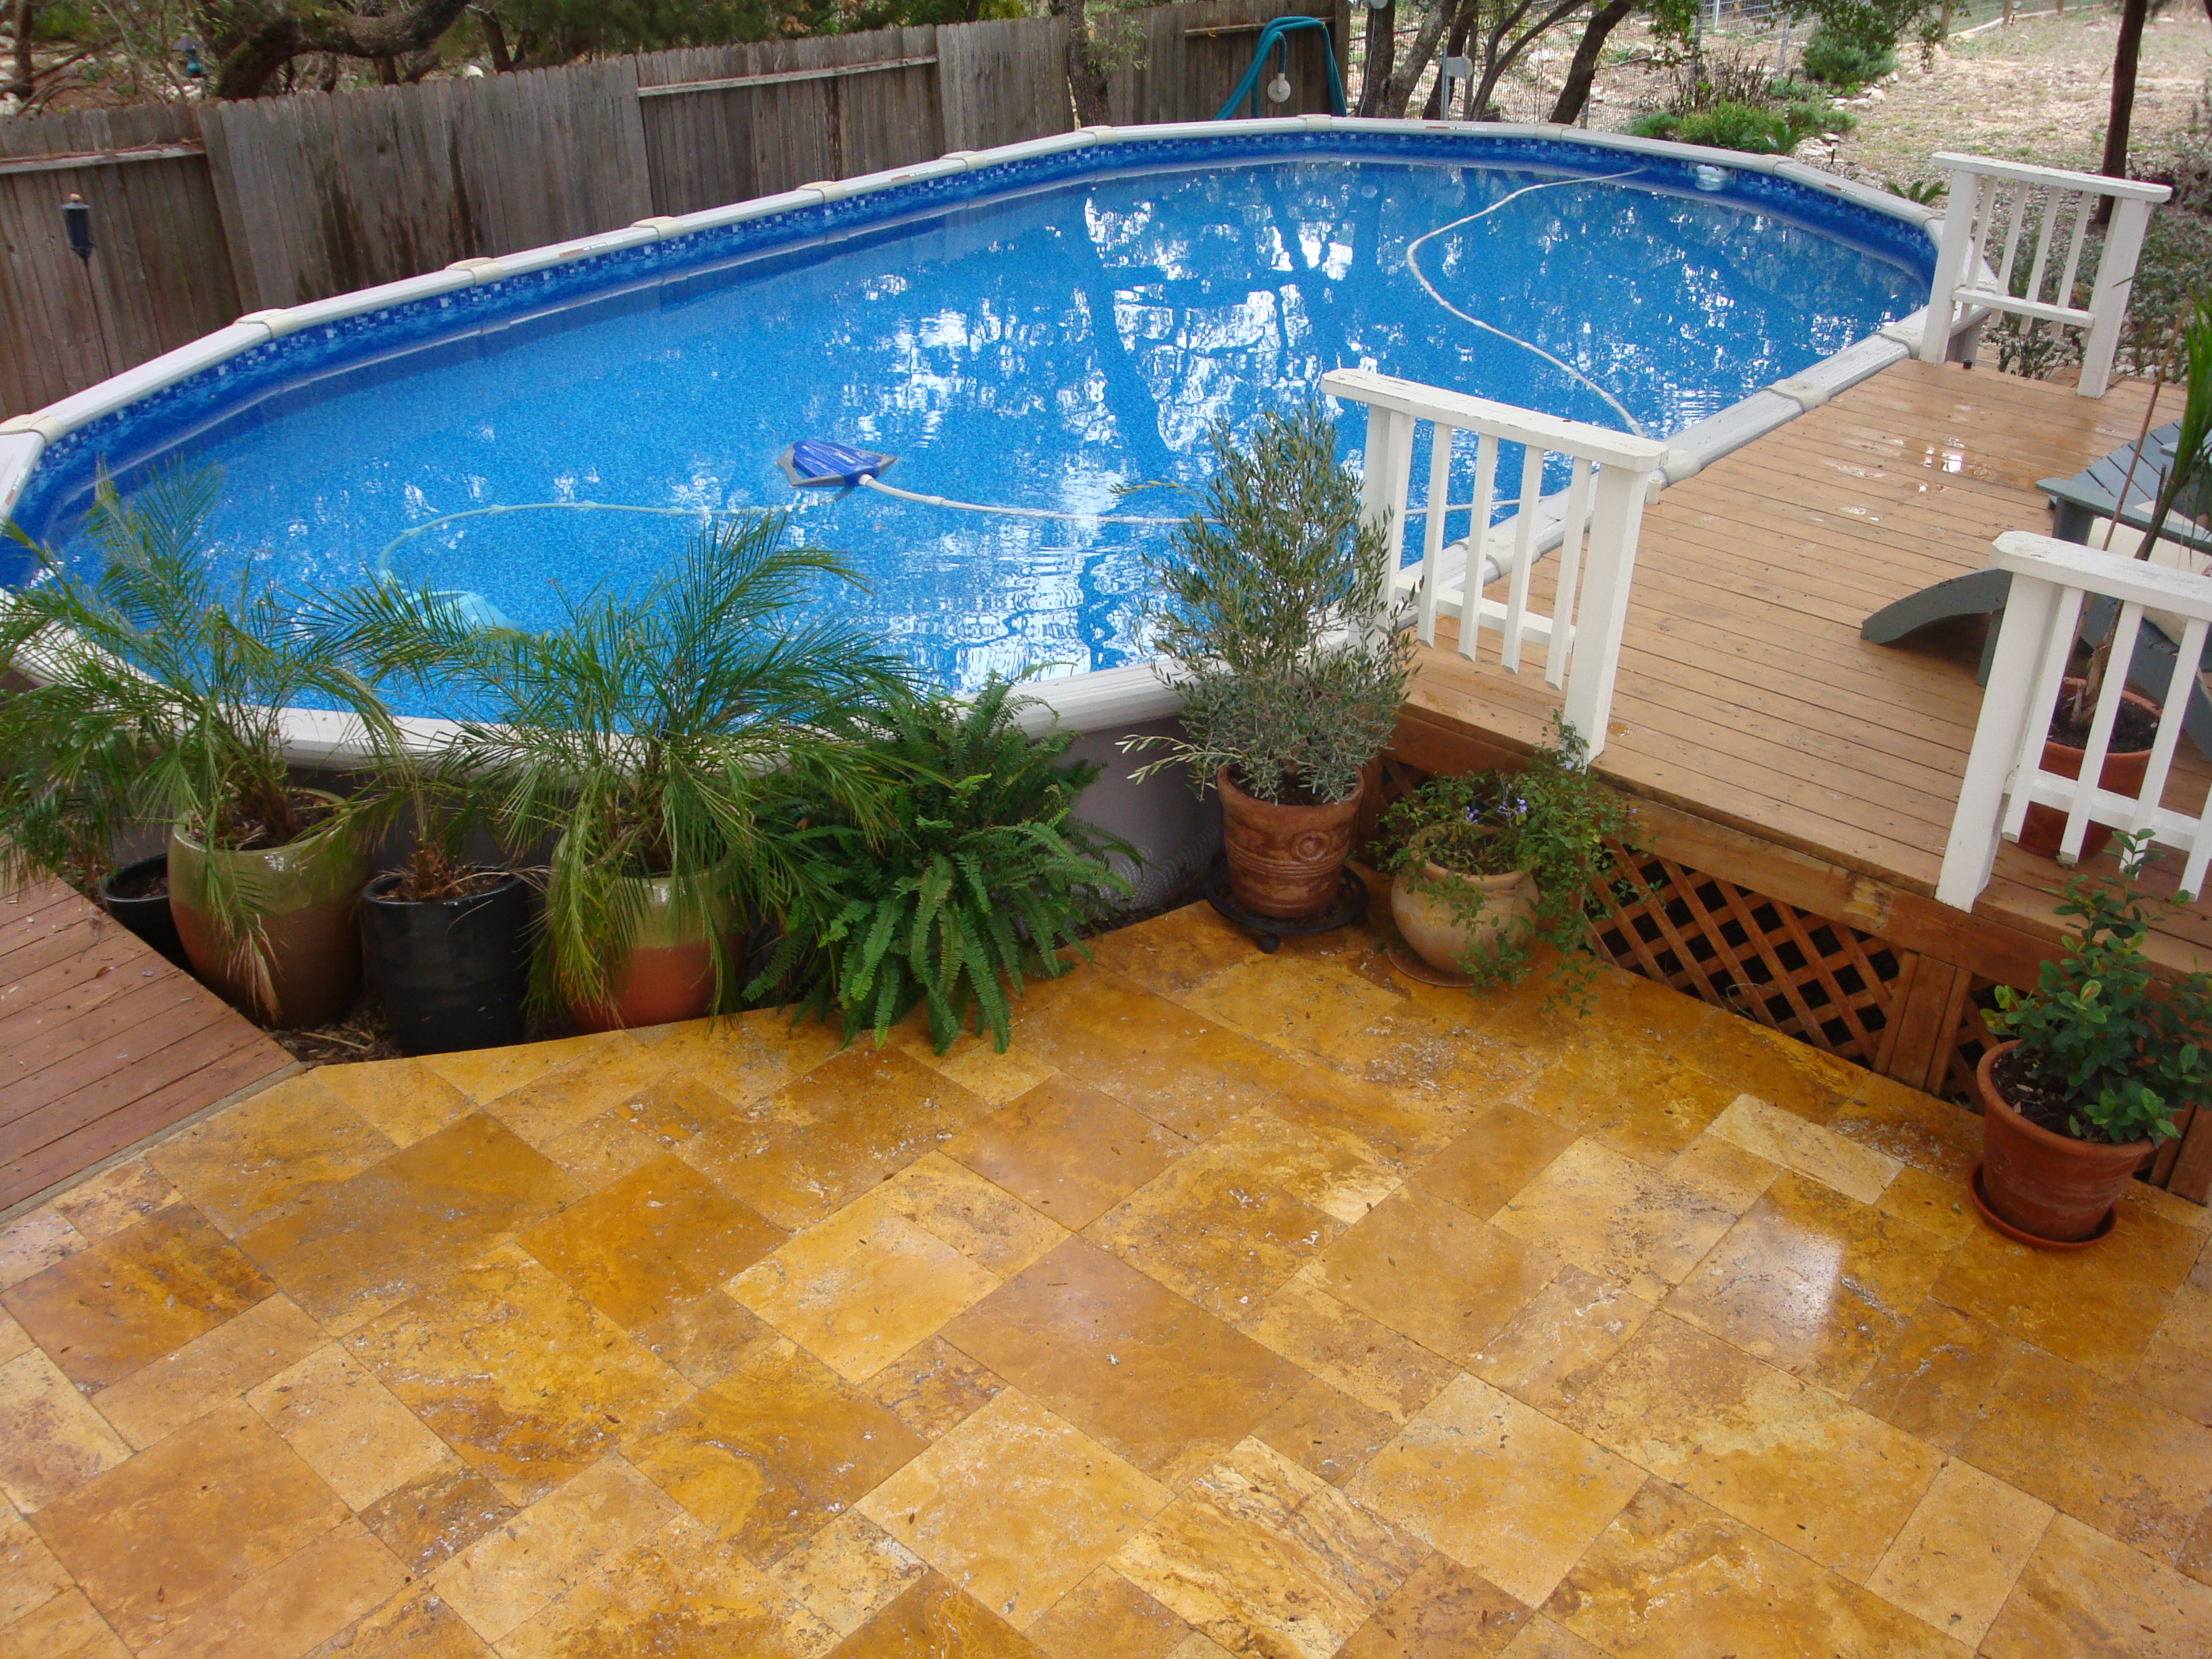 Backyard above ground pool ideas large and beautiful Above ground pool patio ideas